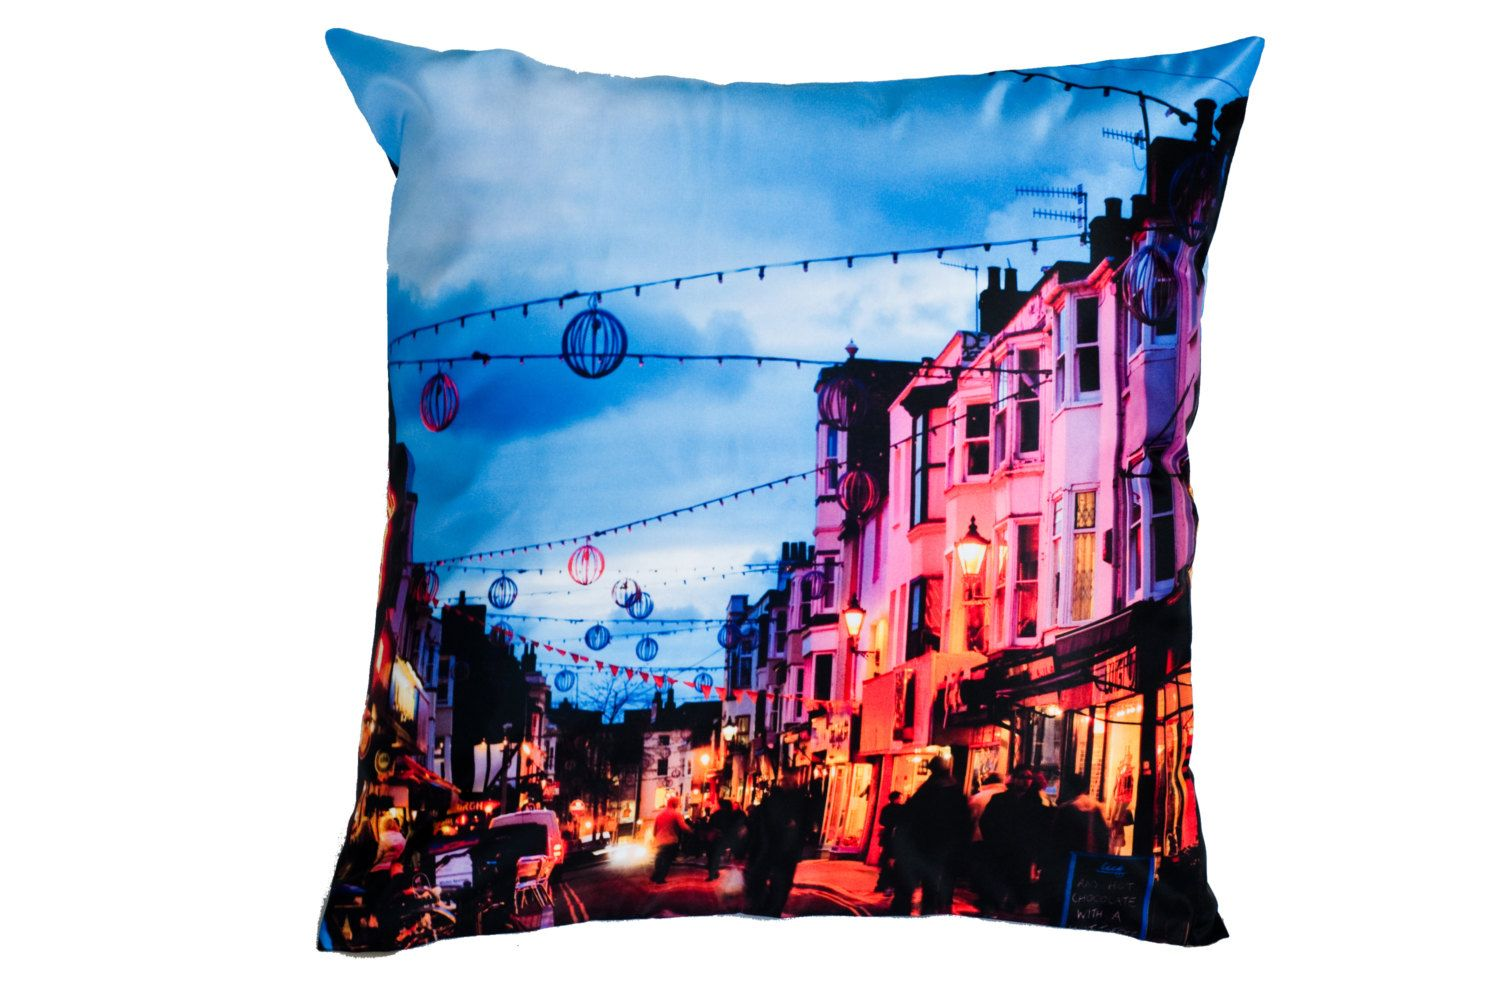 Modern Vibrant City Street Cushion Cover Modern Home Decor Pillow Case by SkatingInspirations on Etsy https://www.etsy.com/listing/206006762/modern-vibrant-city-street-cushion-cover